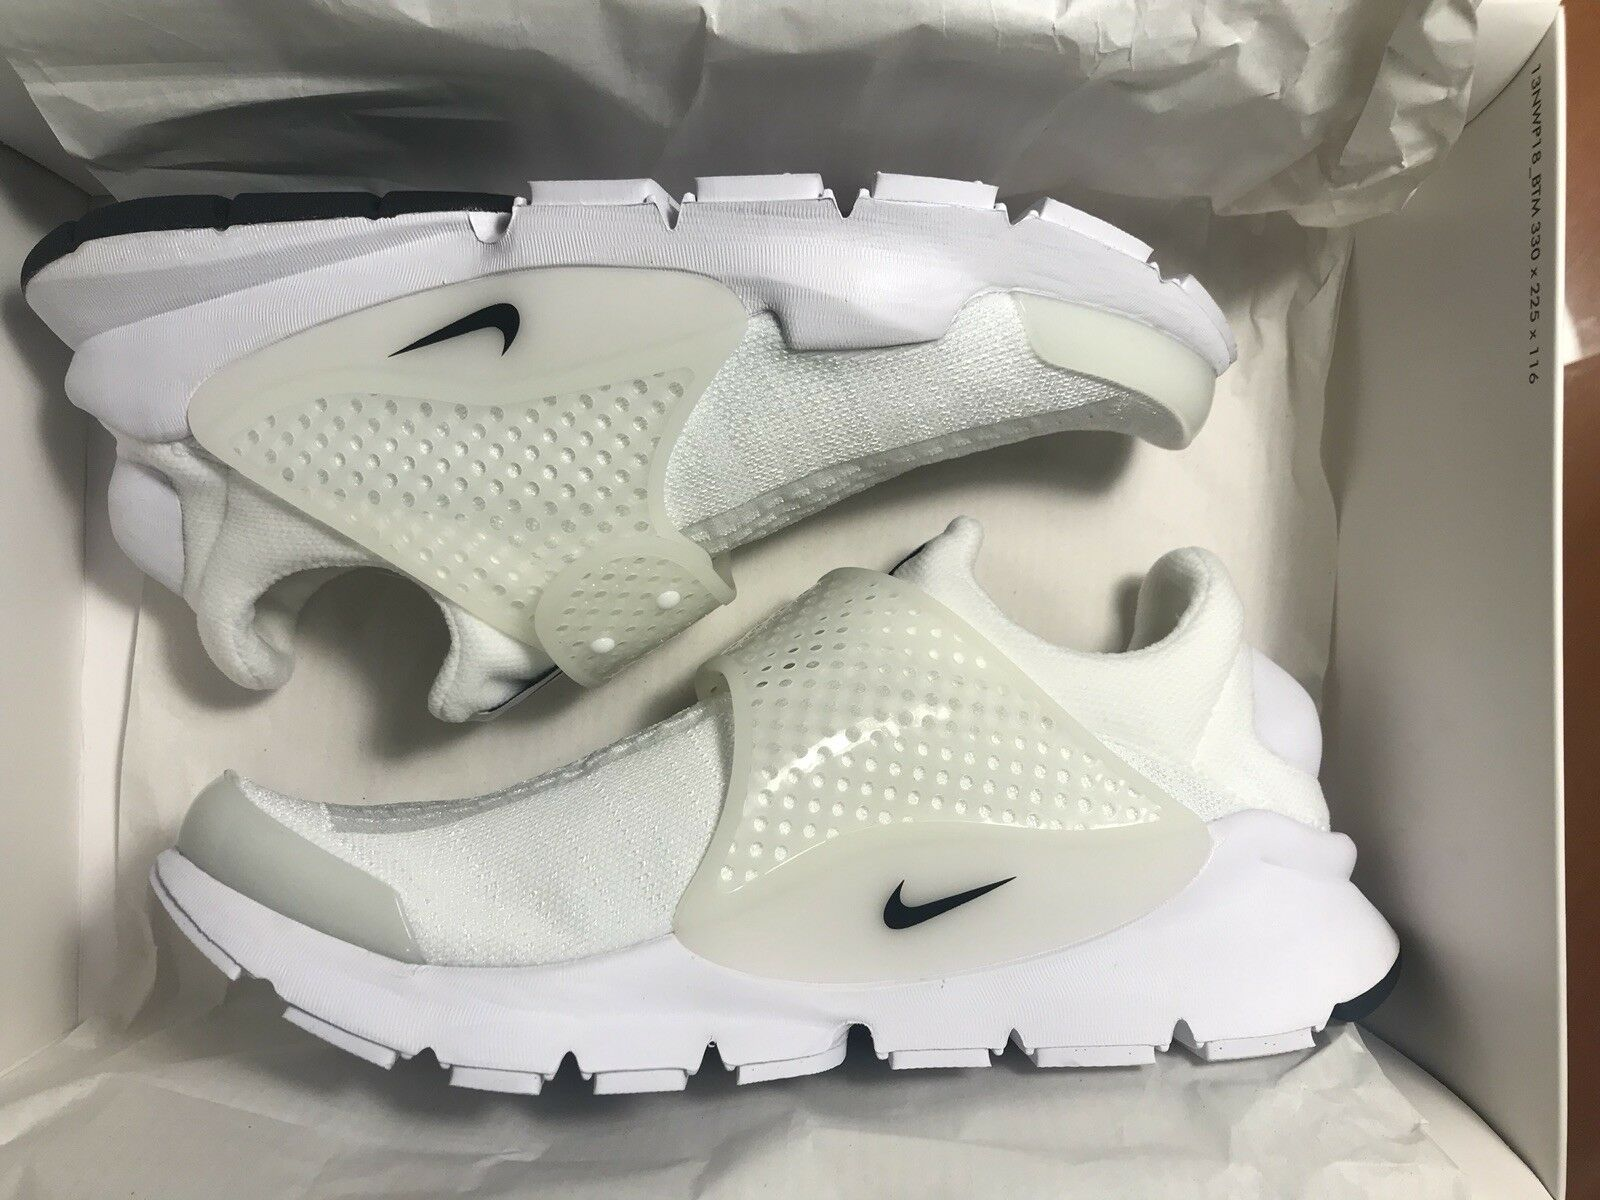 Nike Sock Dart Independence Day Pack US8, White, NEW, DS, International shipping